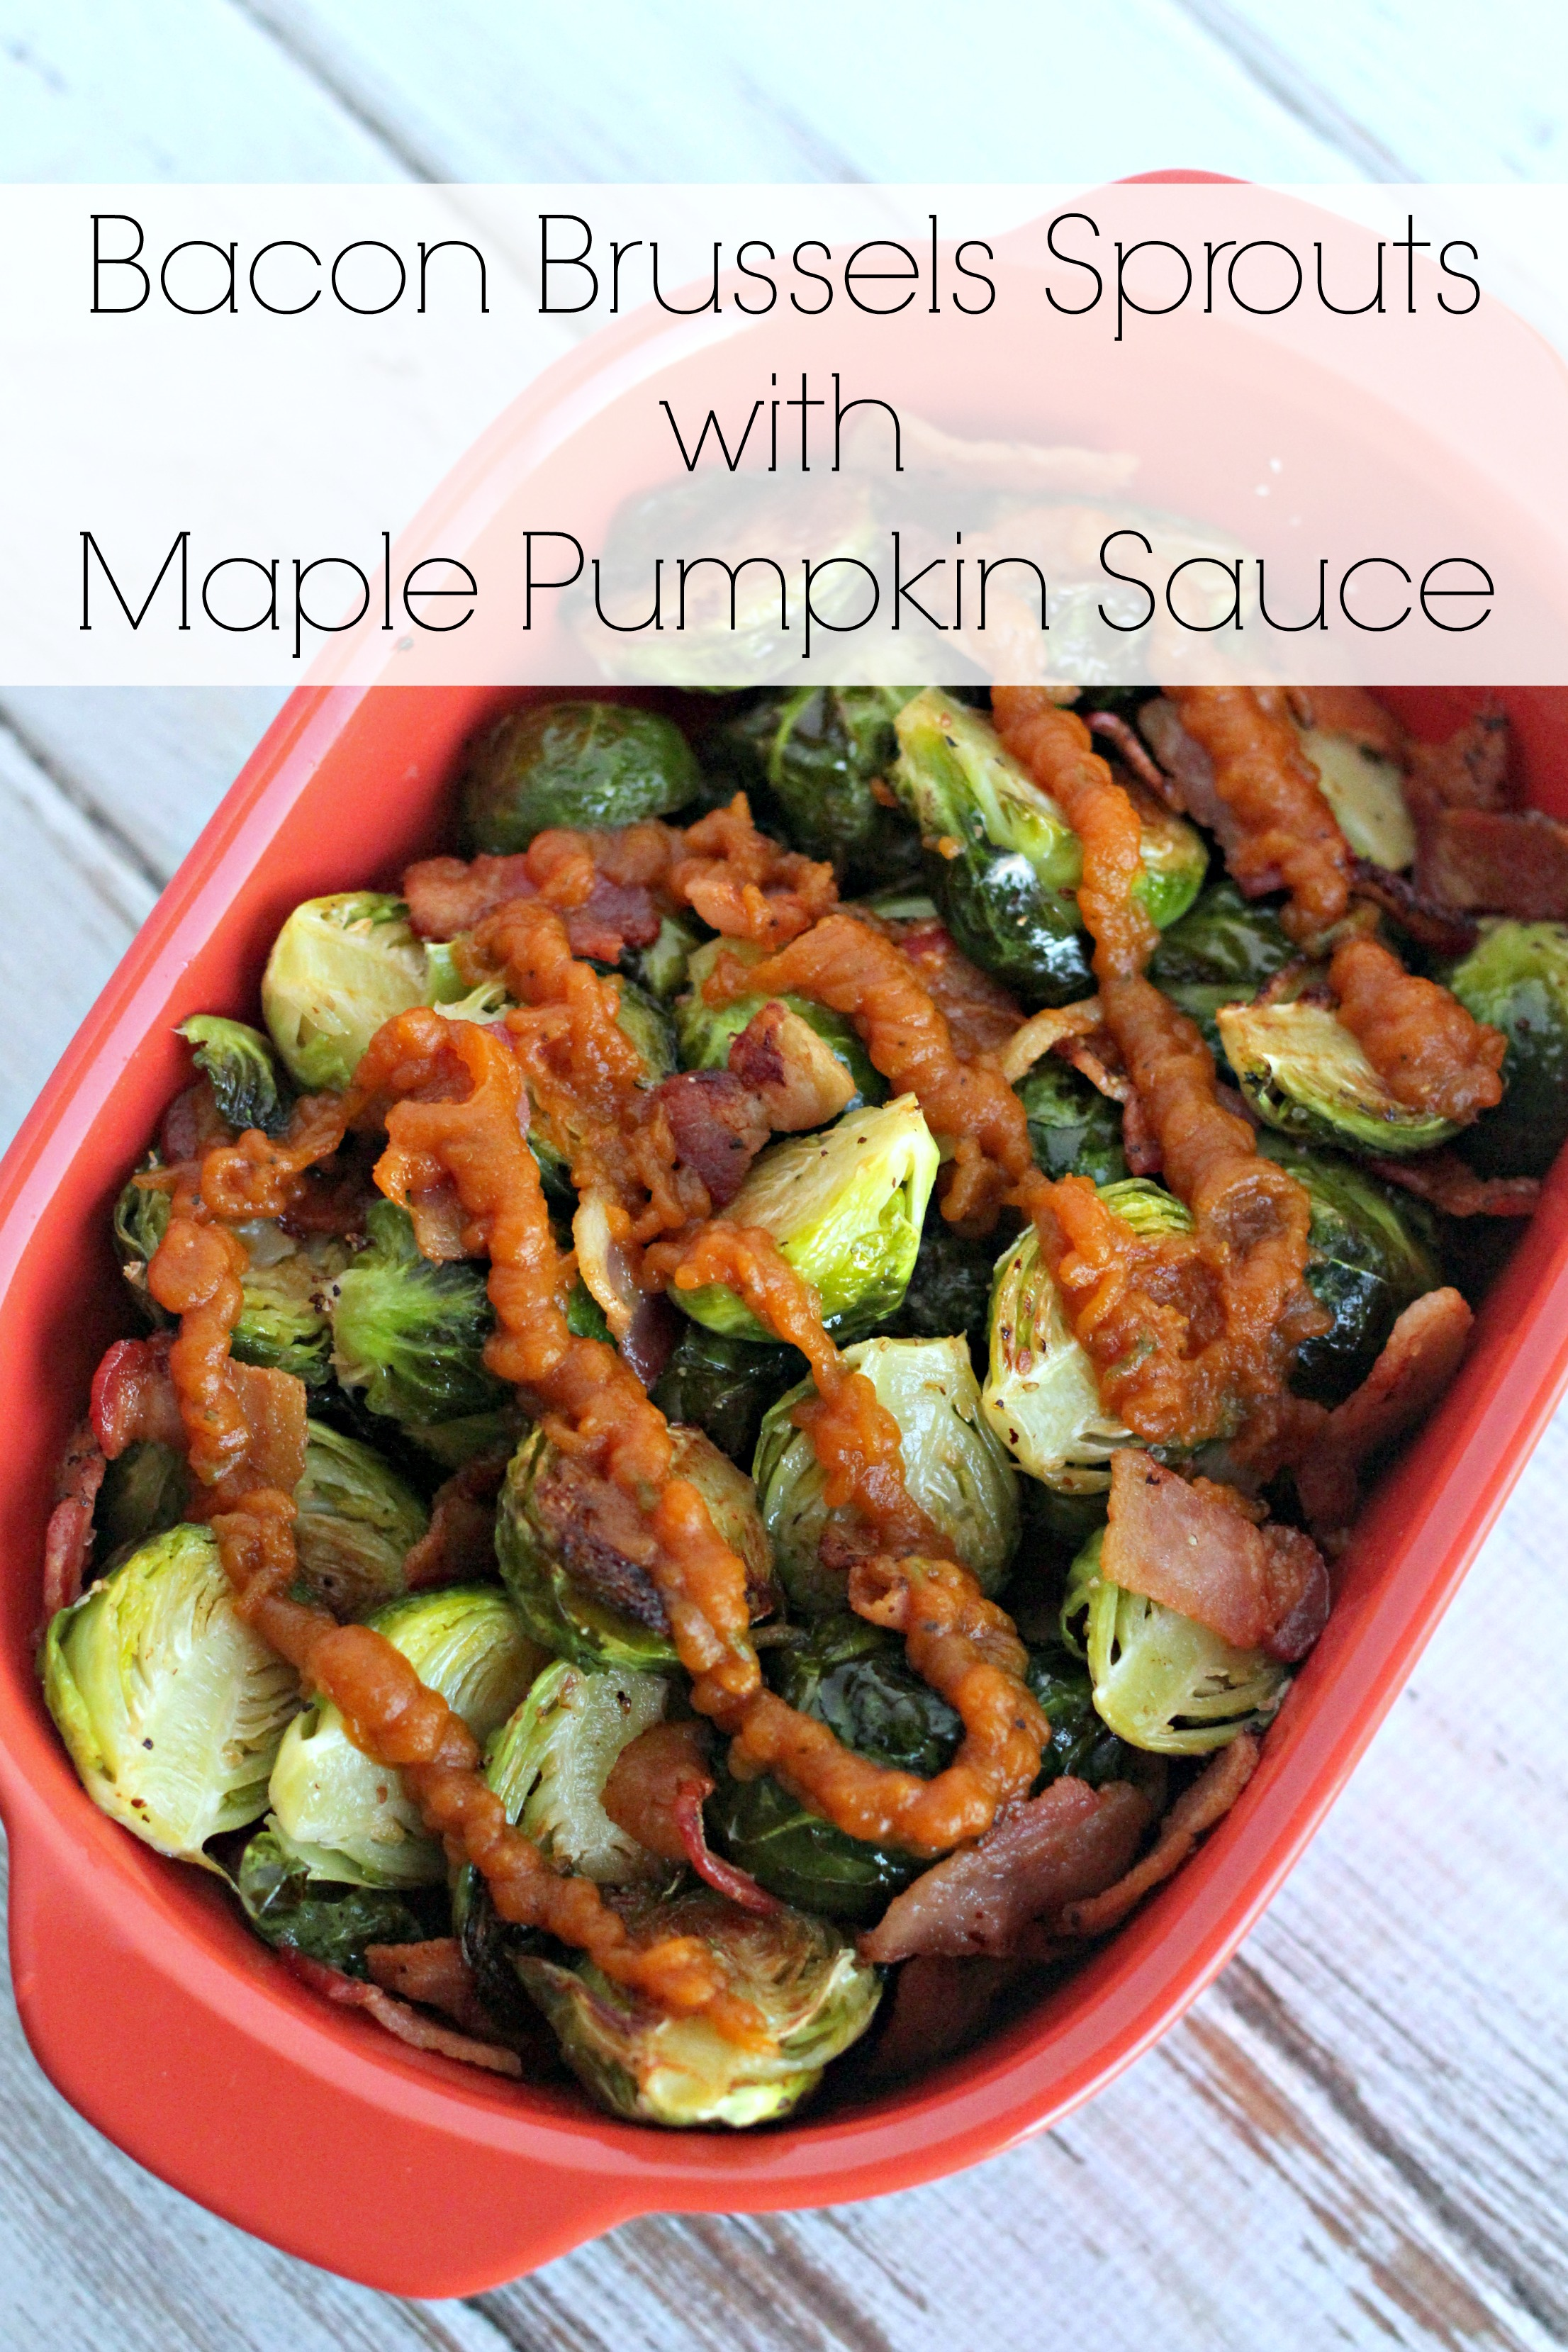 Bacon Brussels Sprouts with Maple Pumpkin Sauce